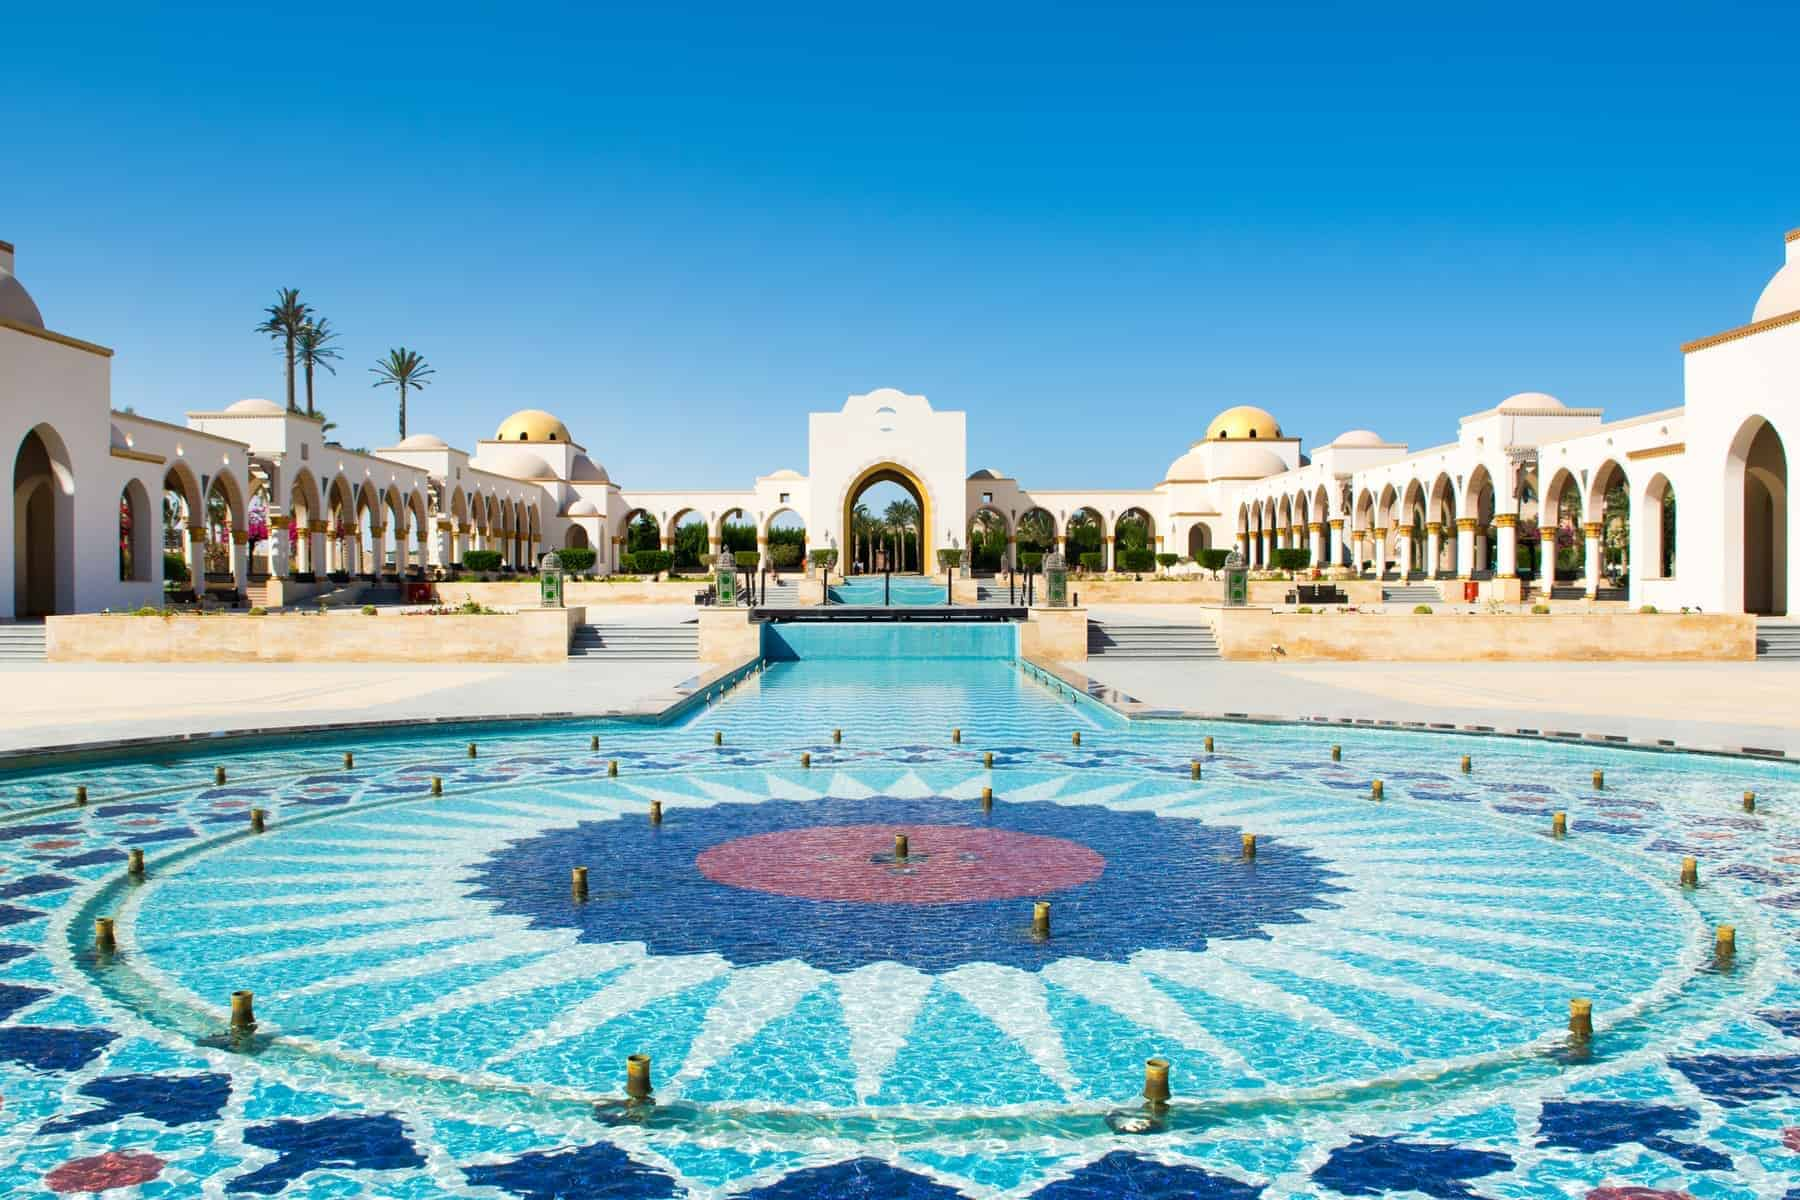 Belvedere in old town of Sahl Hasheesh. Egypt